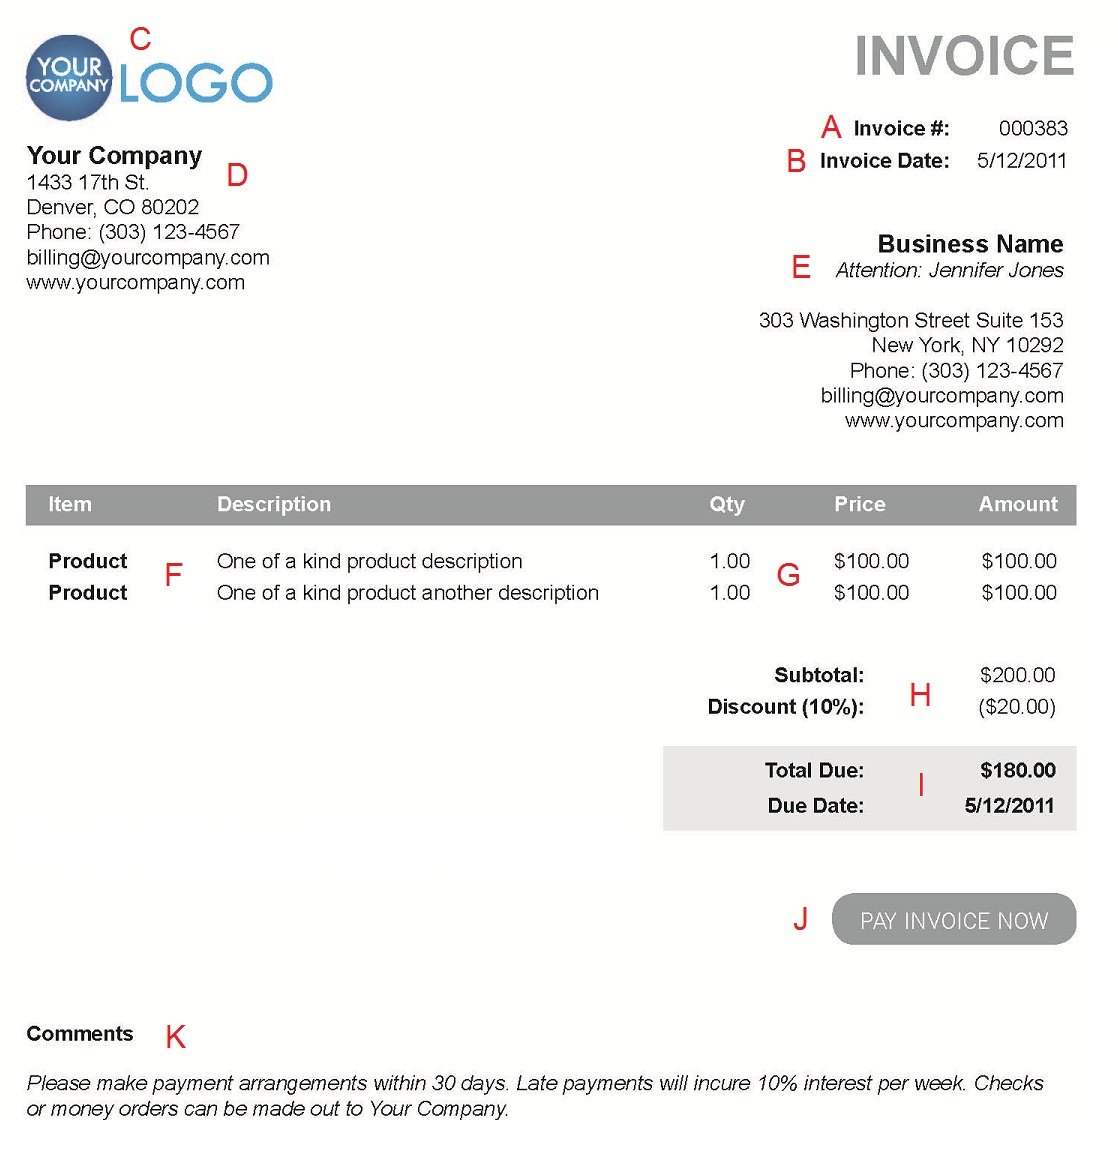 Breakupus  Sweet The  Different Sections Of An Electronic Payment Invoice With Exquisite A  With Archaic Invoice Template Excel  Also Service Invoice Template Pdf In Addition Free Editable Invoice Template Pdf And Rental Invoice Template Word As Well As Zoho Invoice Free Additionally Invoice Format Template From Paysimplecom With Breakupus  Exquisite The  Different Sections Of An Electronic Payment Invoice With Archaic A  And Sweet Invoice Template Excel  Also Service Invoice Template Pdf In Addition Free Editable Invoice Template Pdf From Paysimplecom